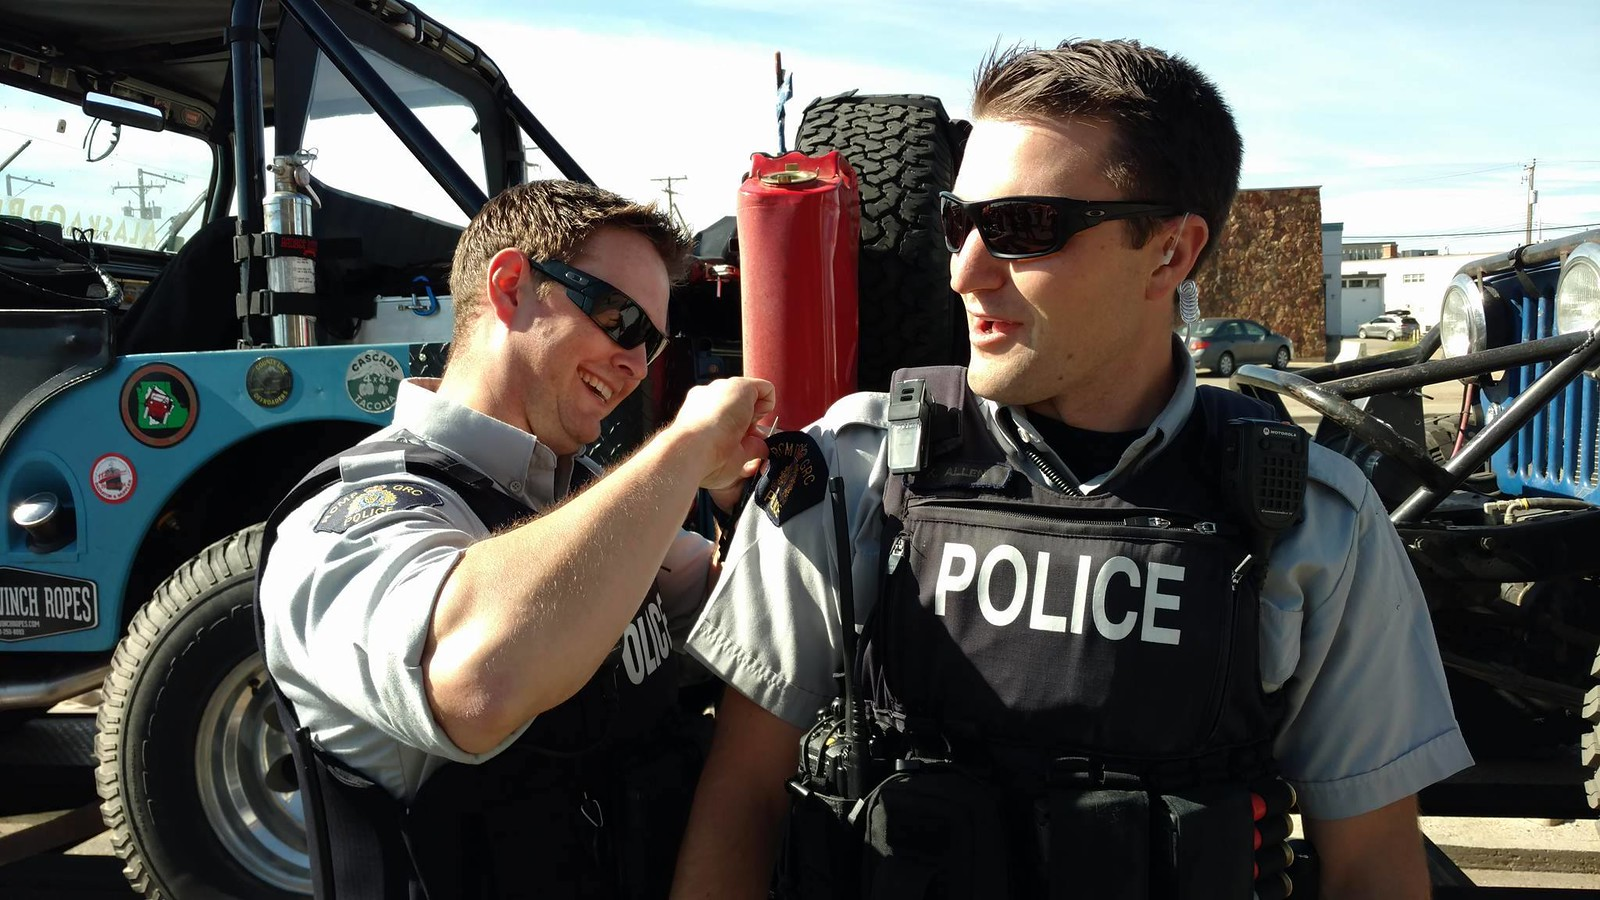 Officer removing shoulder patch to donate to Caravan